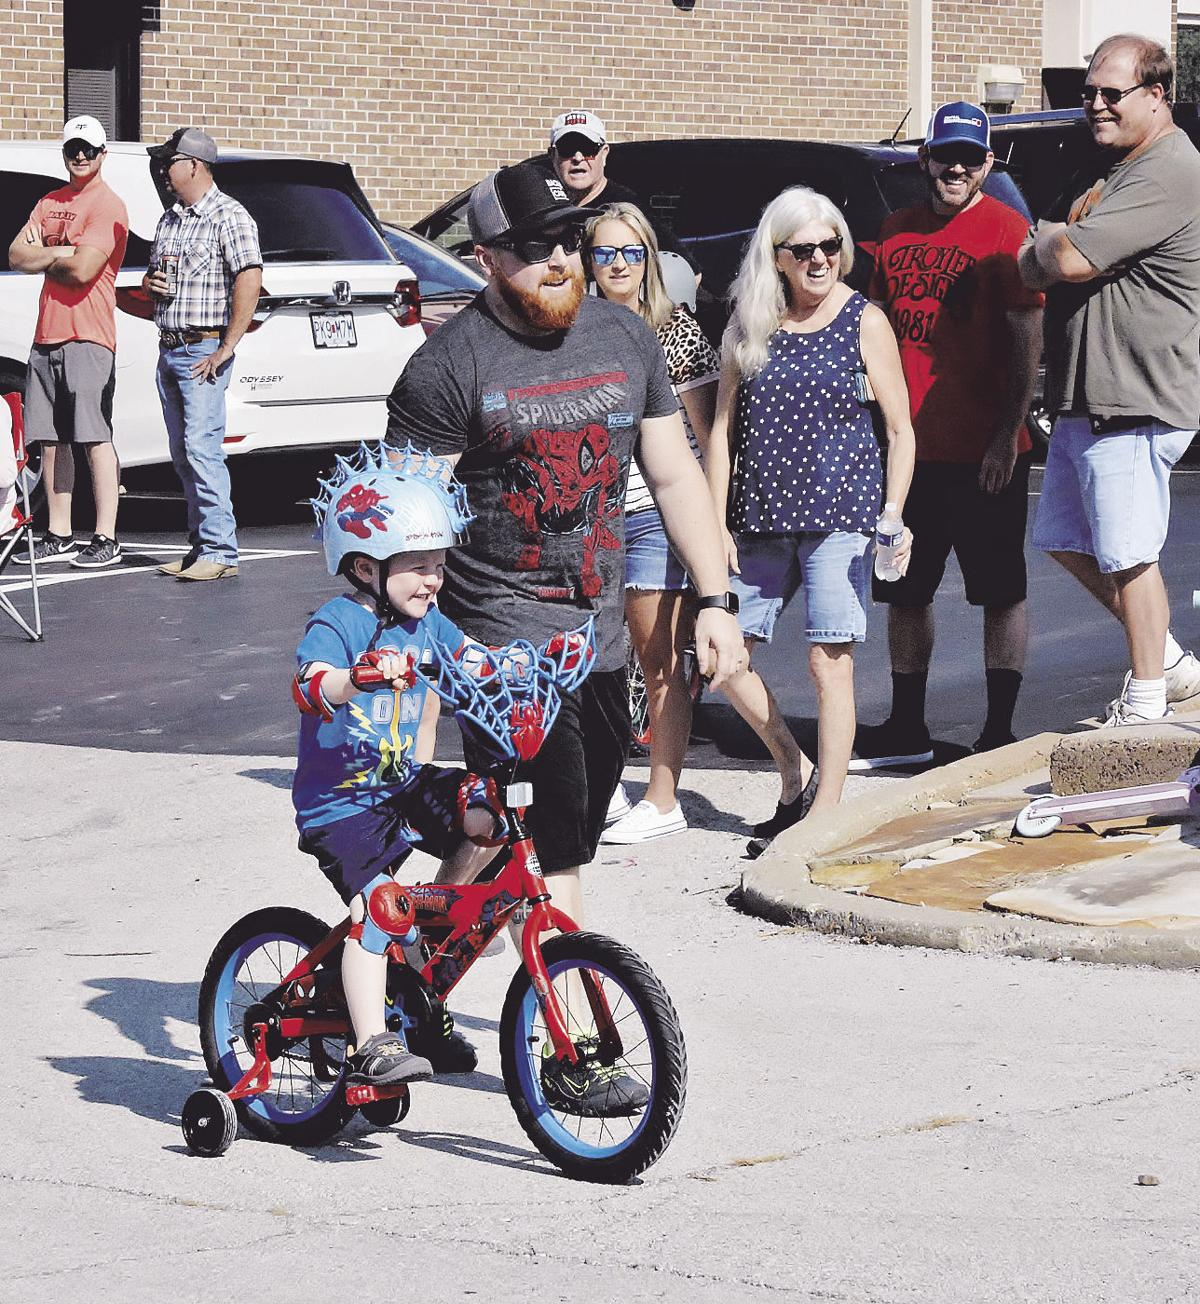 Old-fashioned fun brings families to downtown Kearney